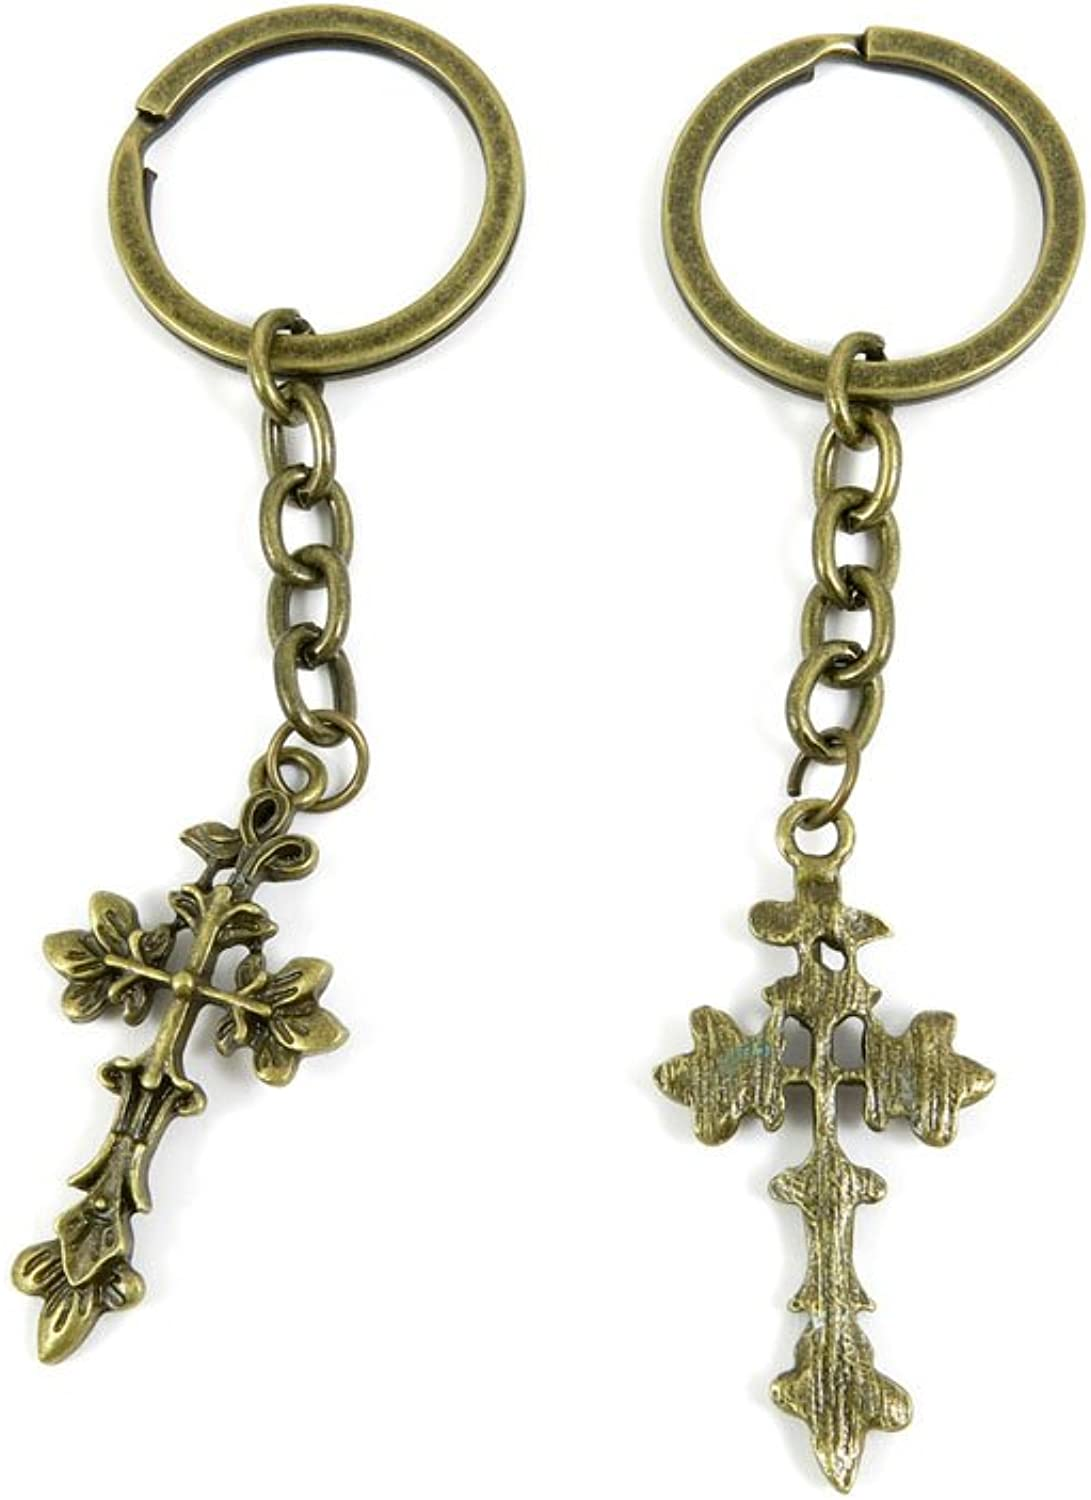 80 PCS Keyring Car Door Key Ring Tag Chain Keychain Wholesale Suppliers Charms Handmade I7ZM5 Leaves Latin Cross